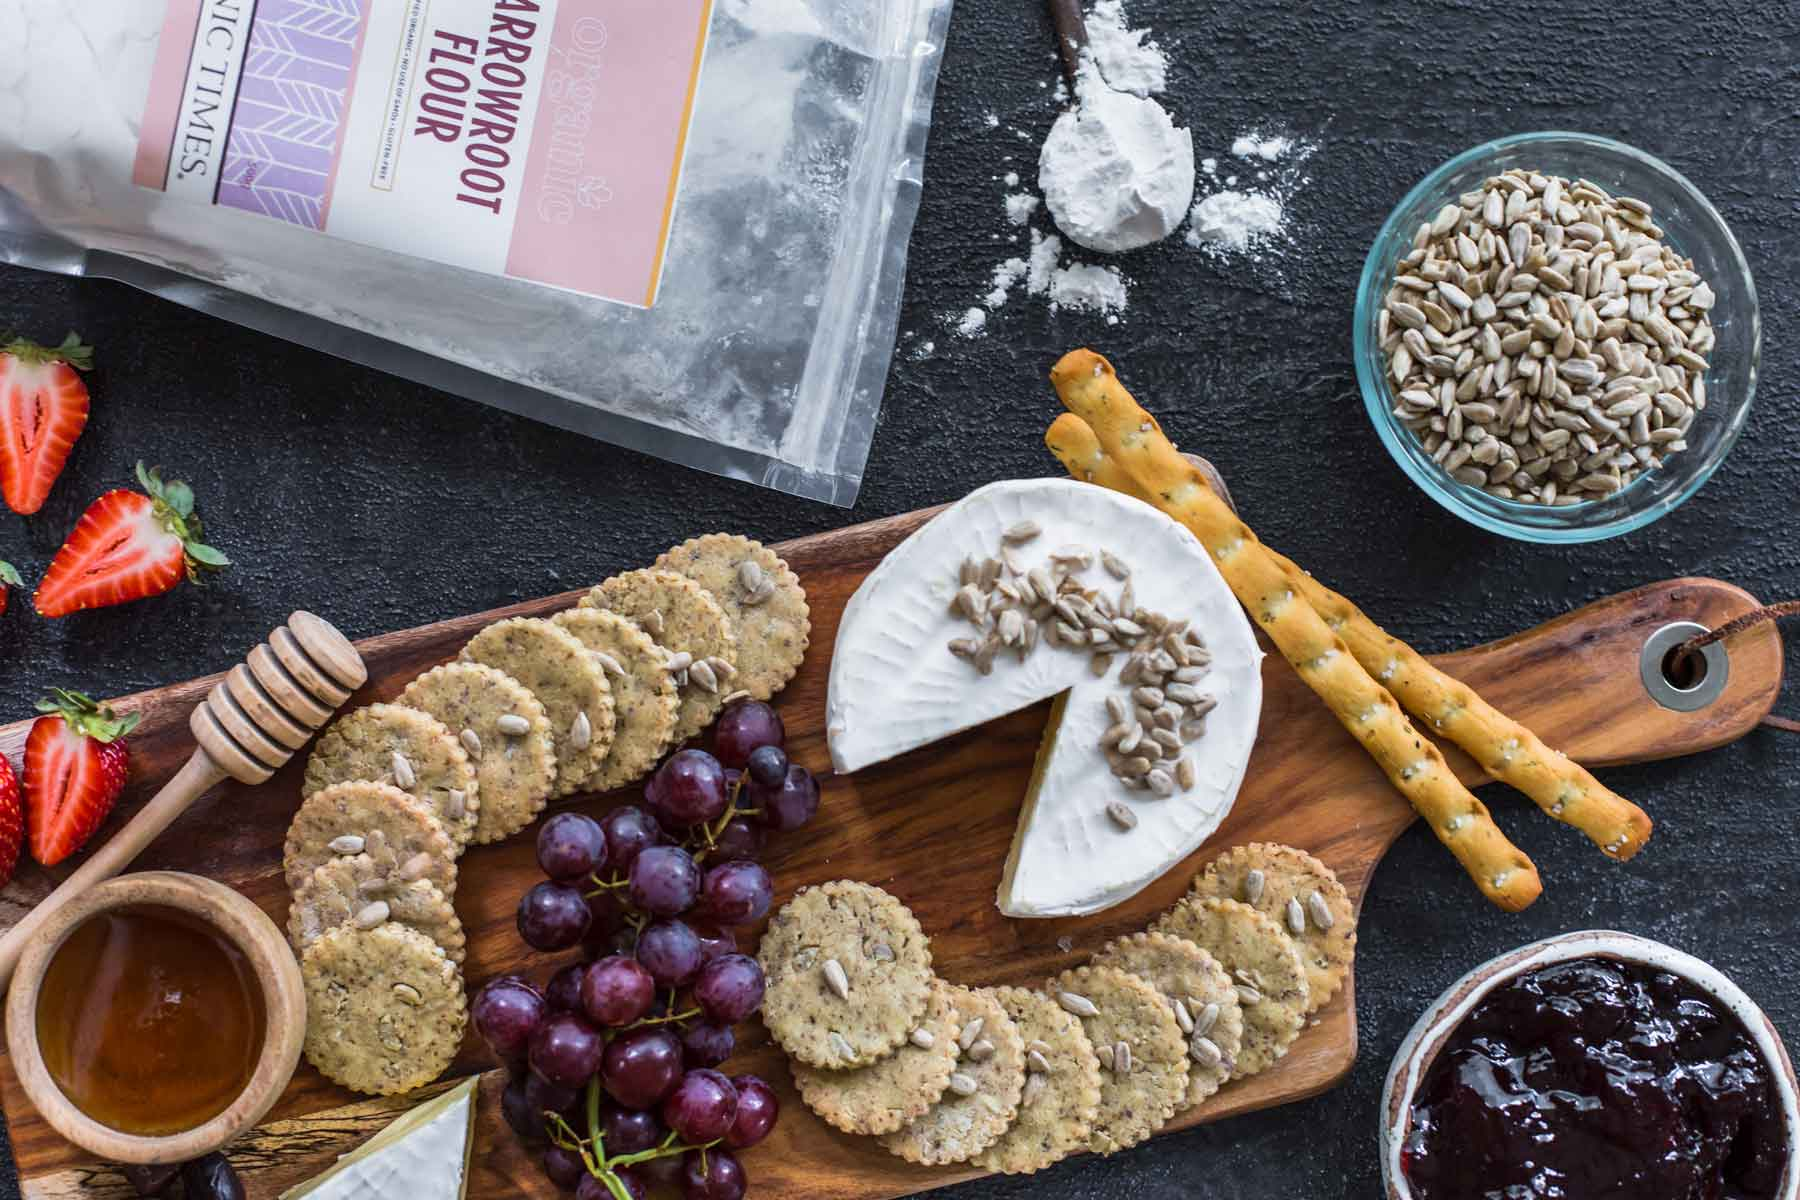 A bag of Organic Times Arrowroot Flour next to crackers, fruits, cheese, honey and olives